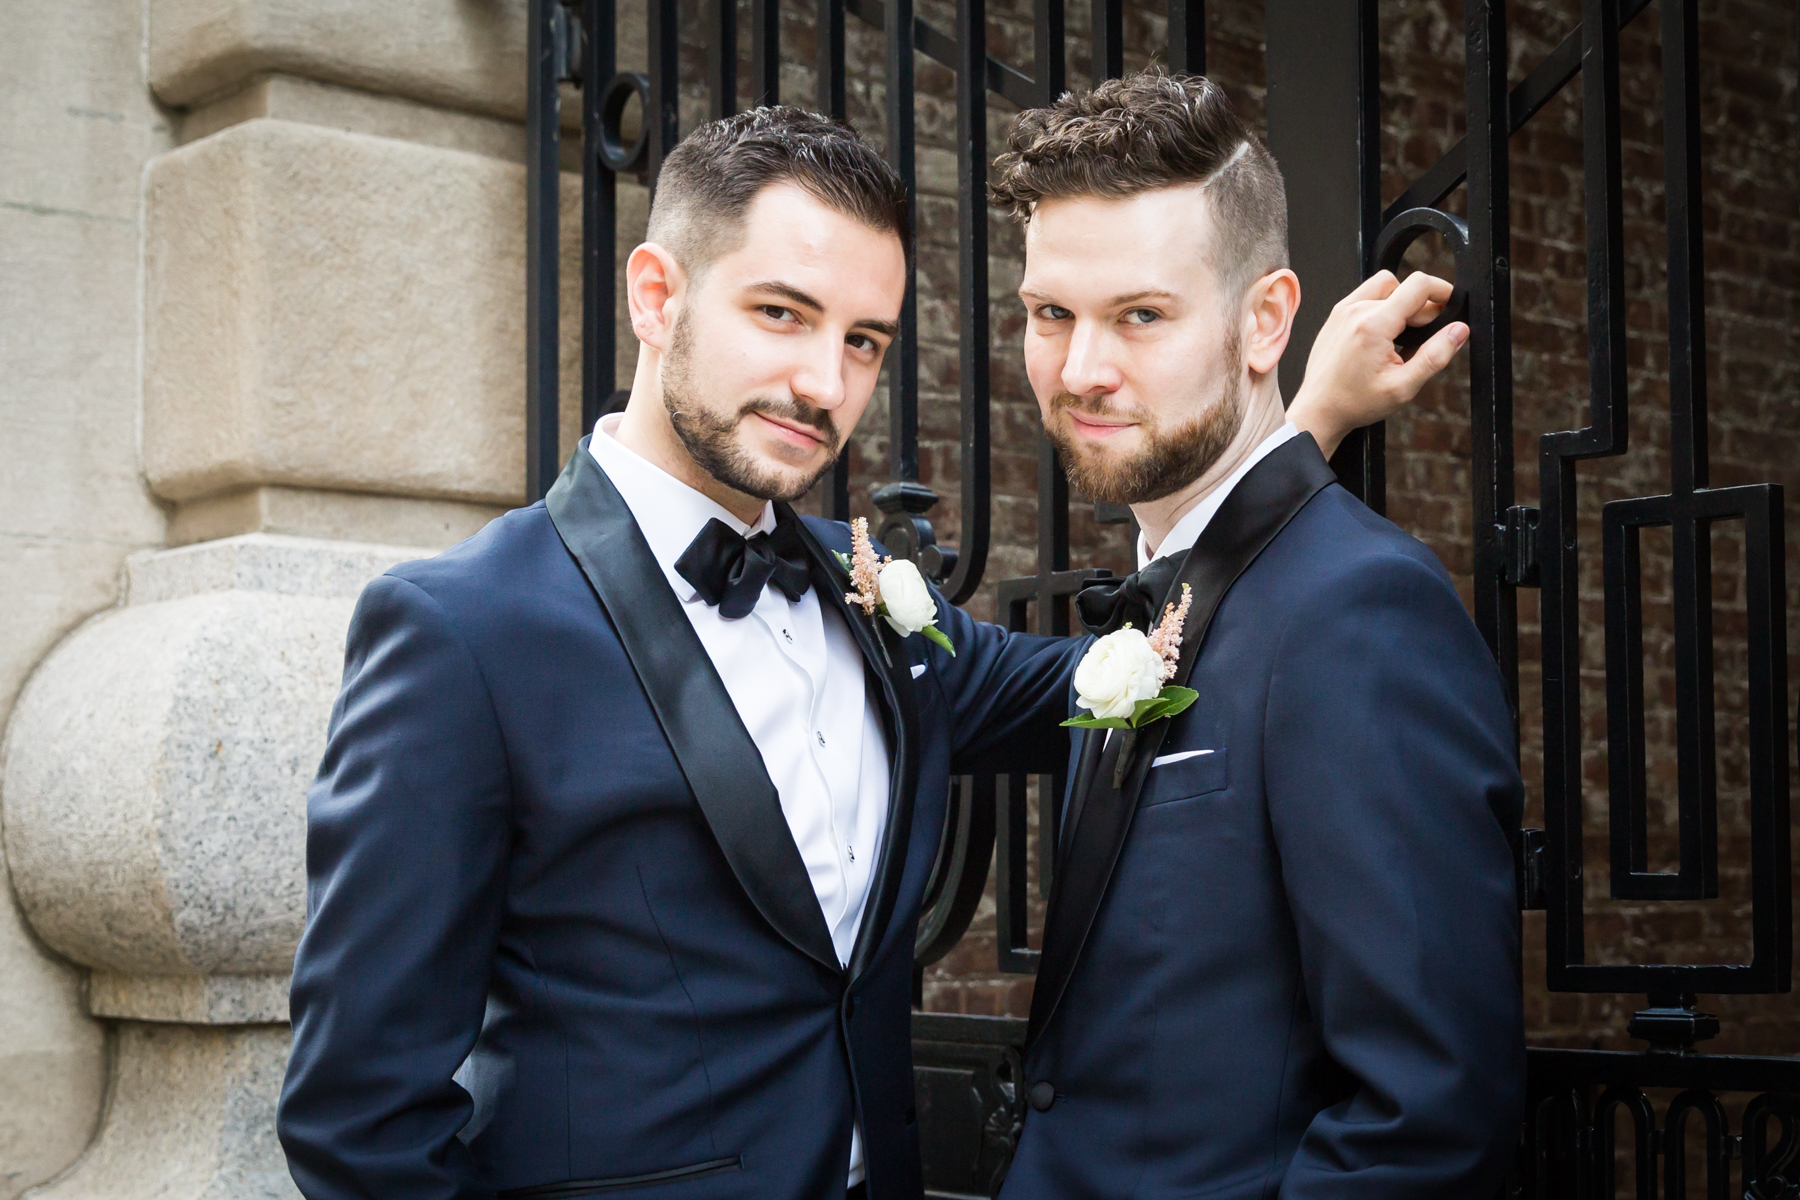 Wedding portraits of two grooms The Dakota apartment building